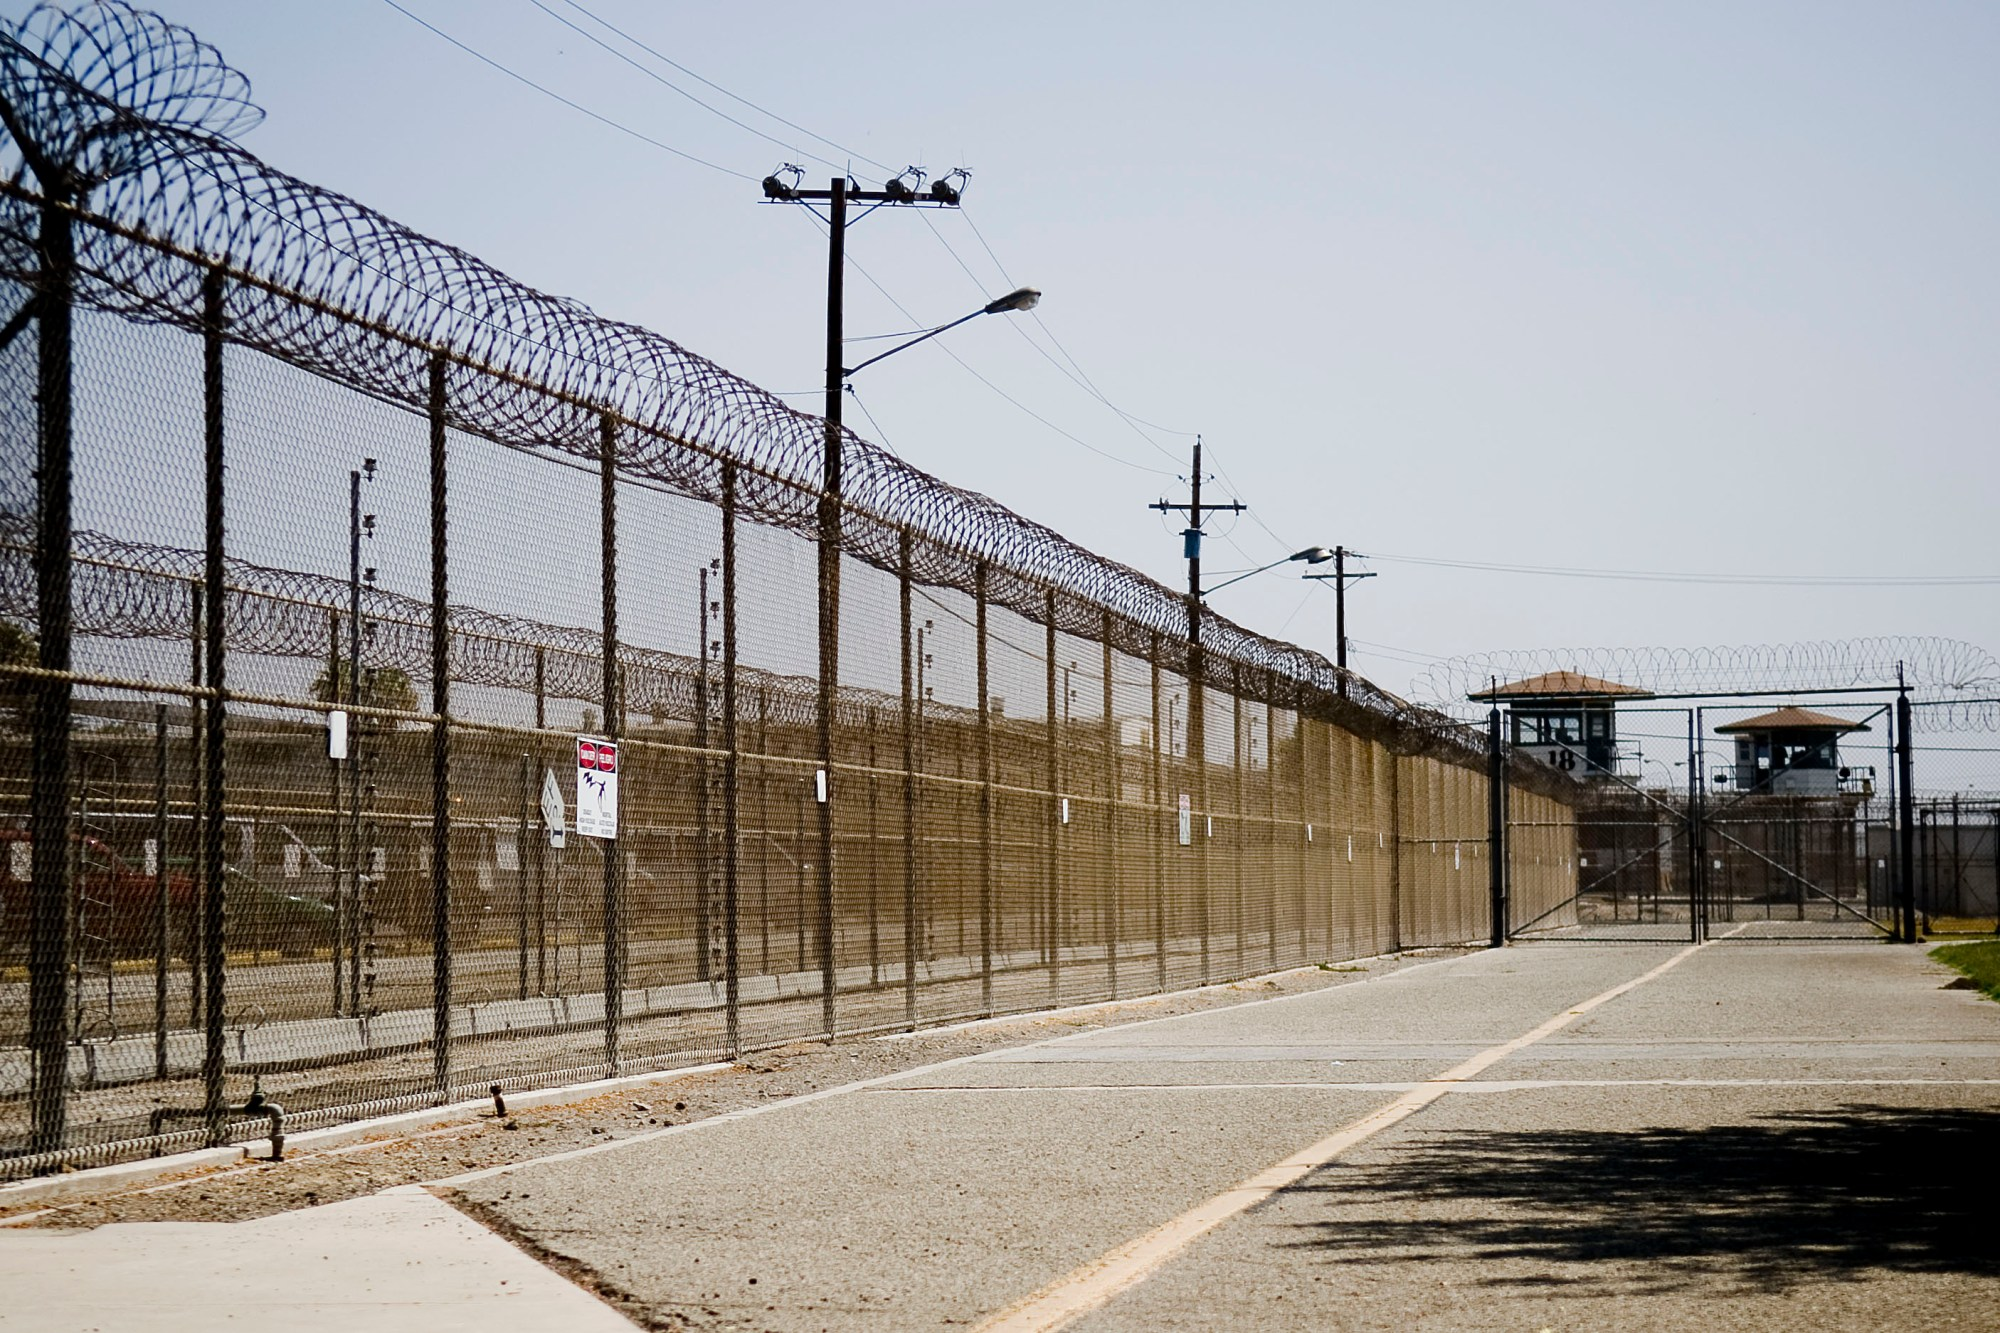 The California Institution for Men prison fence is seen on August 19, 2009, in Chino, California. (Michal Czerwonka/Getty Images)